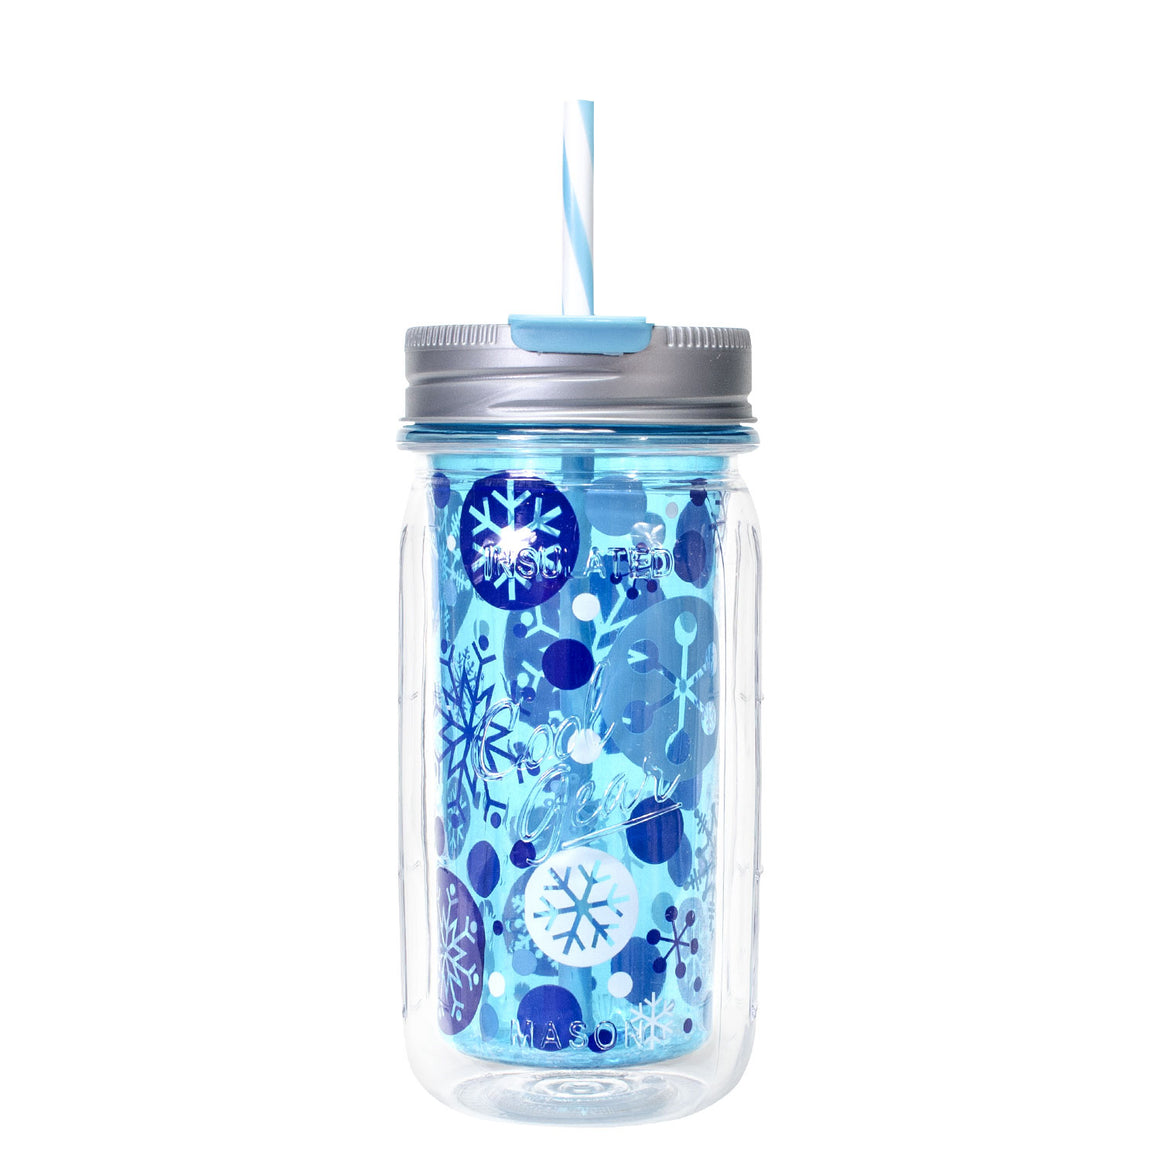 Green / Candy 16 Oz Holiday Mason Jar at Cool Gear Winter Holiday